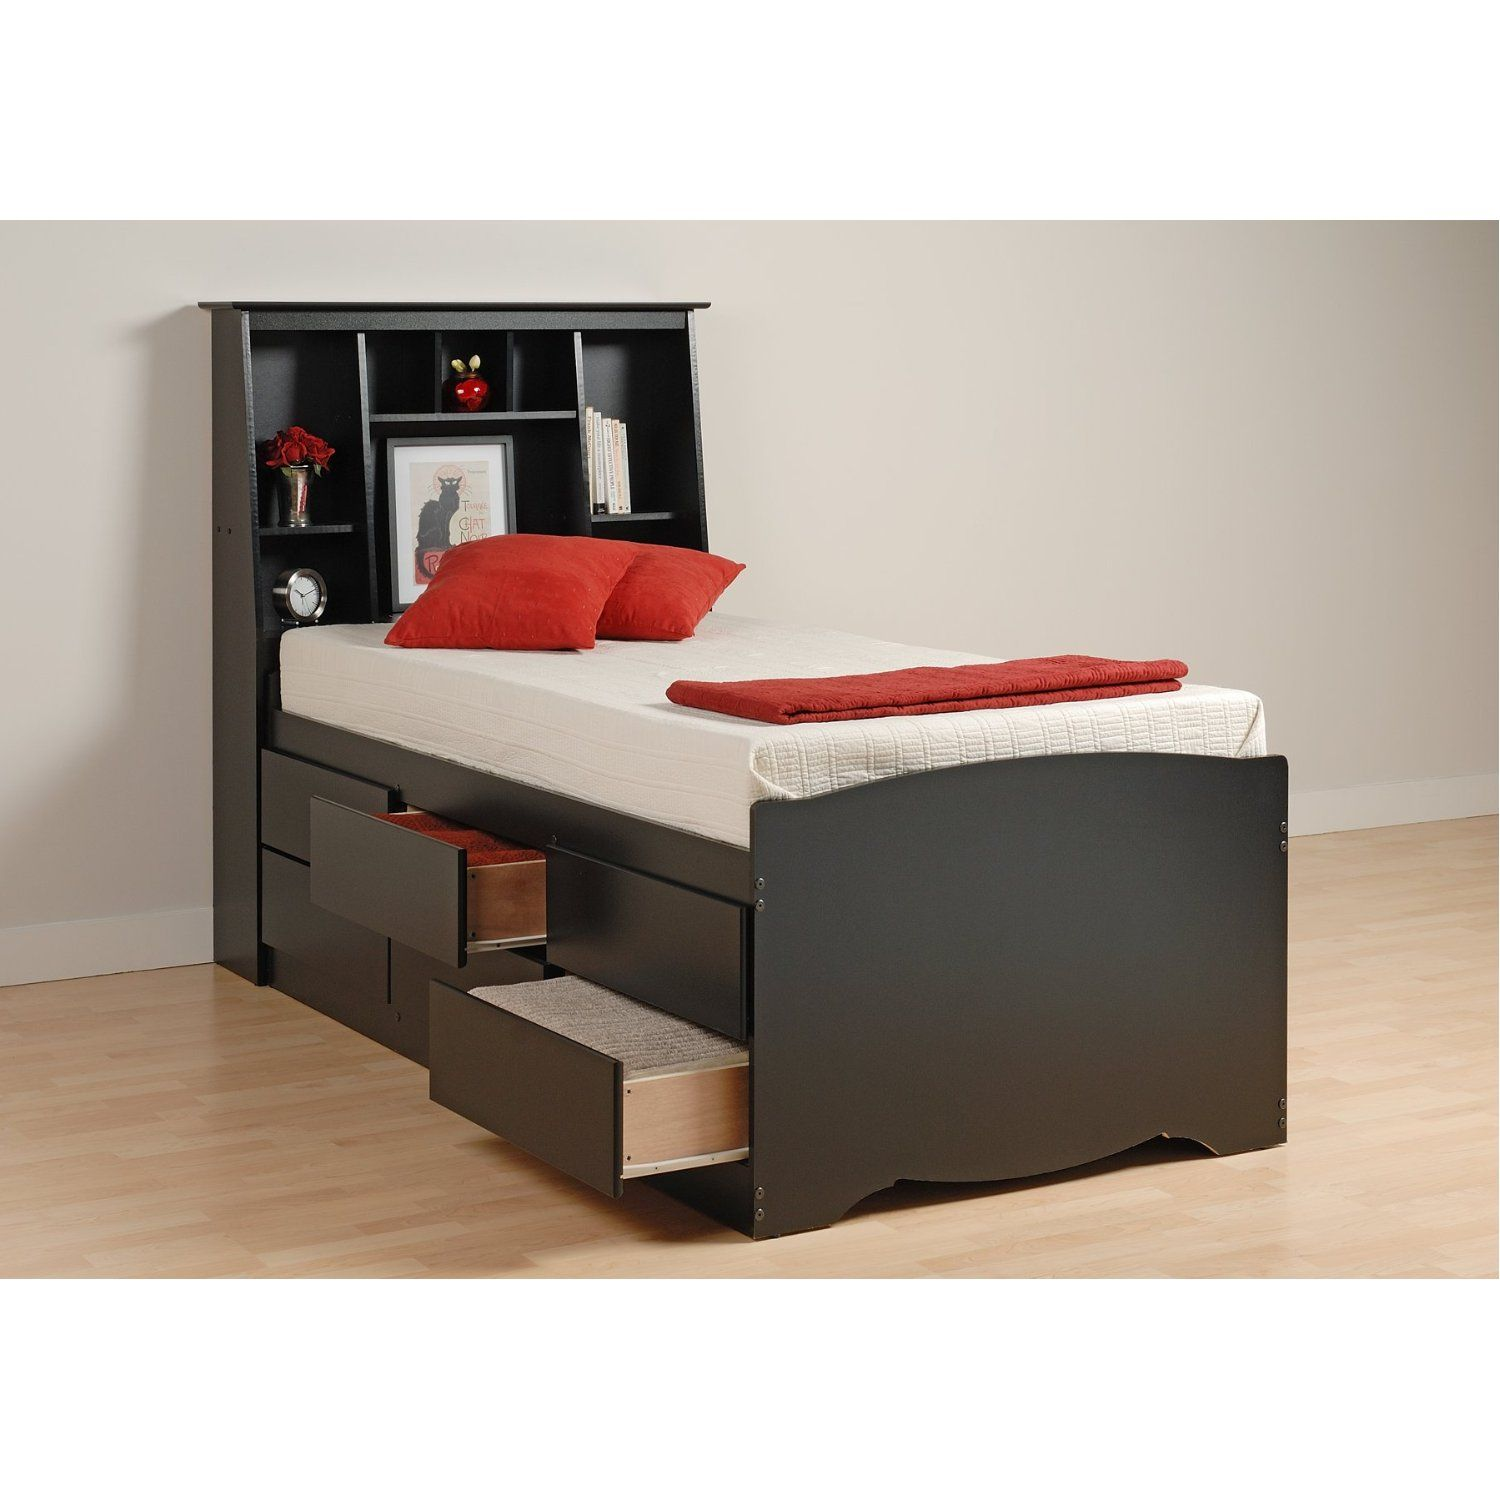 Twin Xl Bed Frame 6 Drawers 369 93 Twin Xl Bed Frame Small